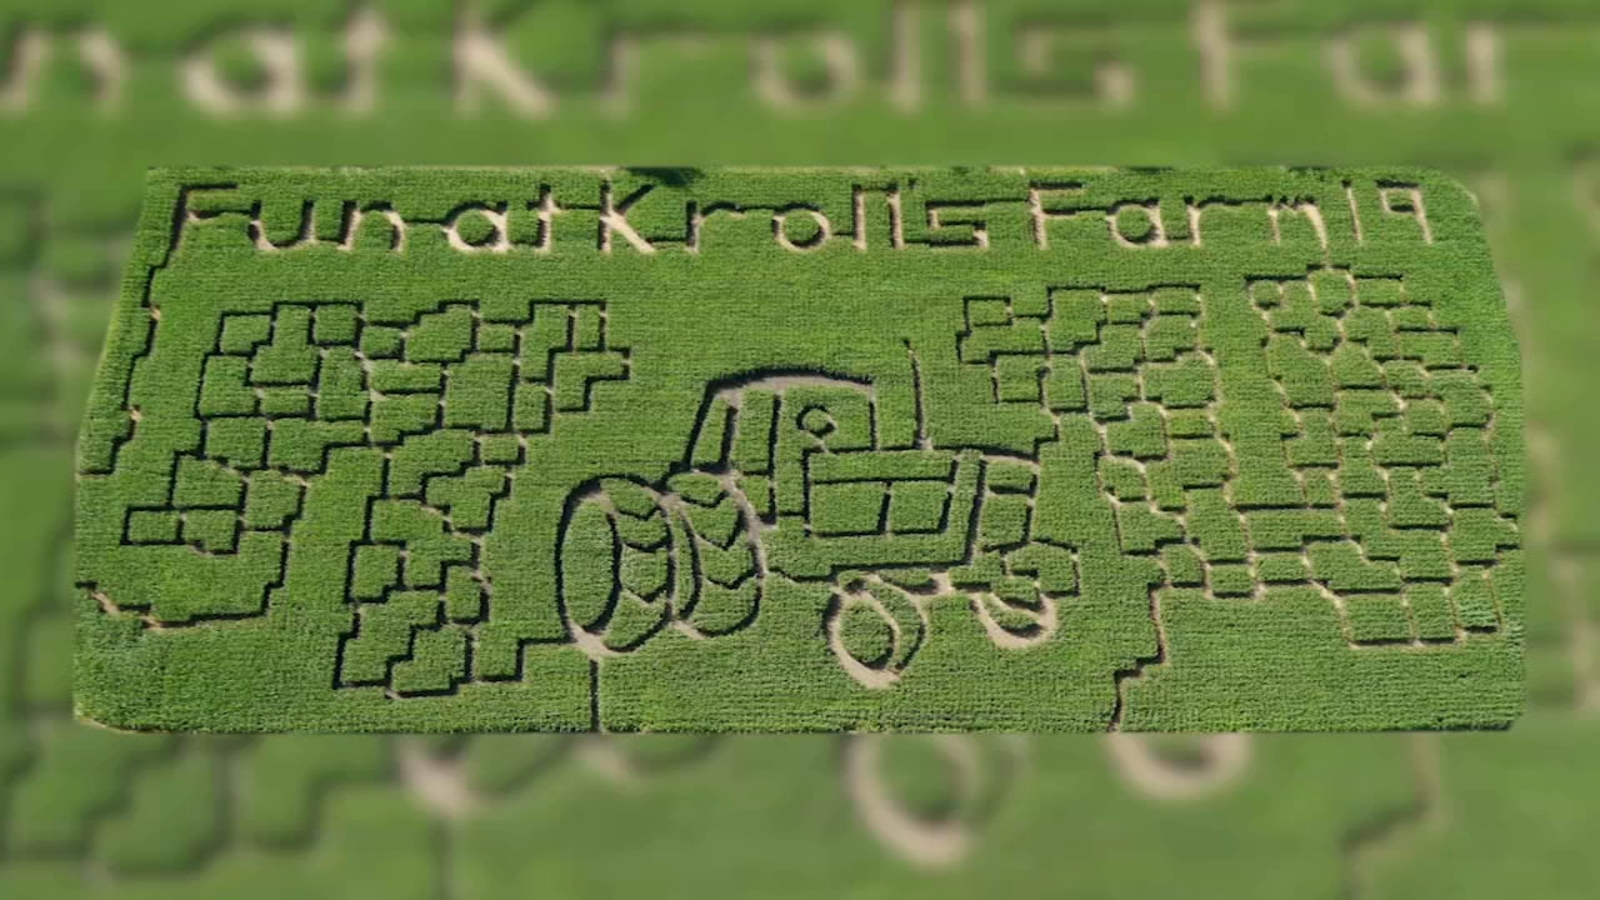 Corn maze opens for season at Kroll's Fall Harvest Farm in Waukegan, cornfield carved by hand with machetes